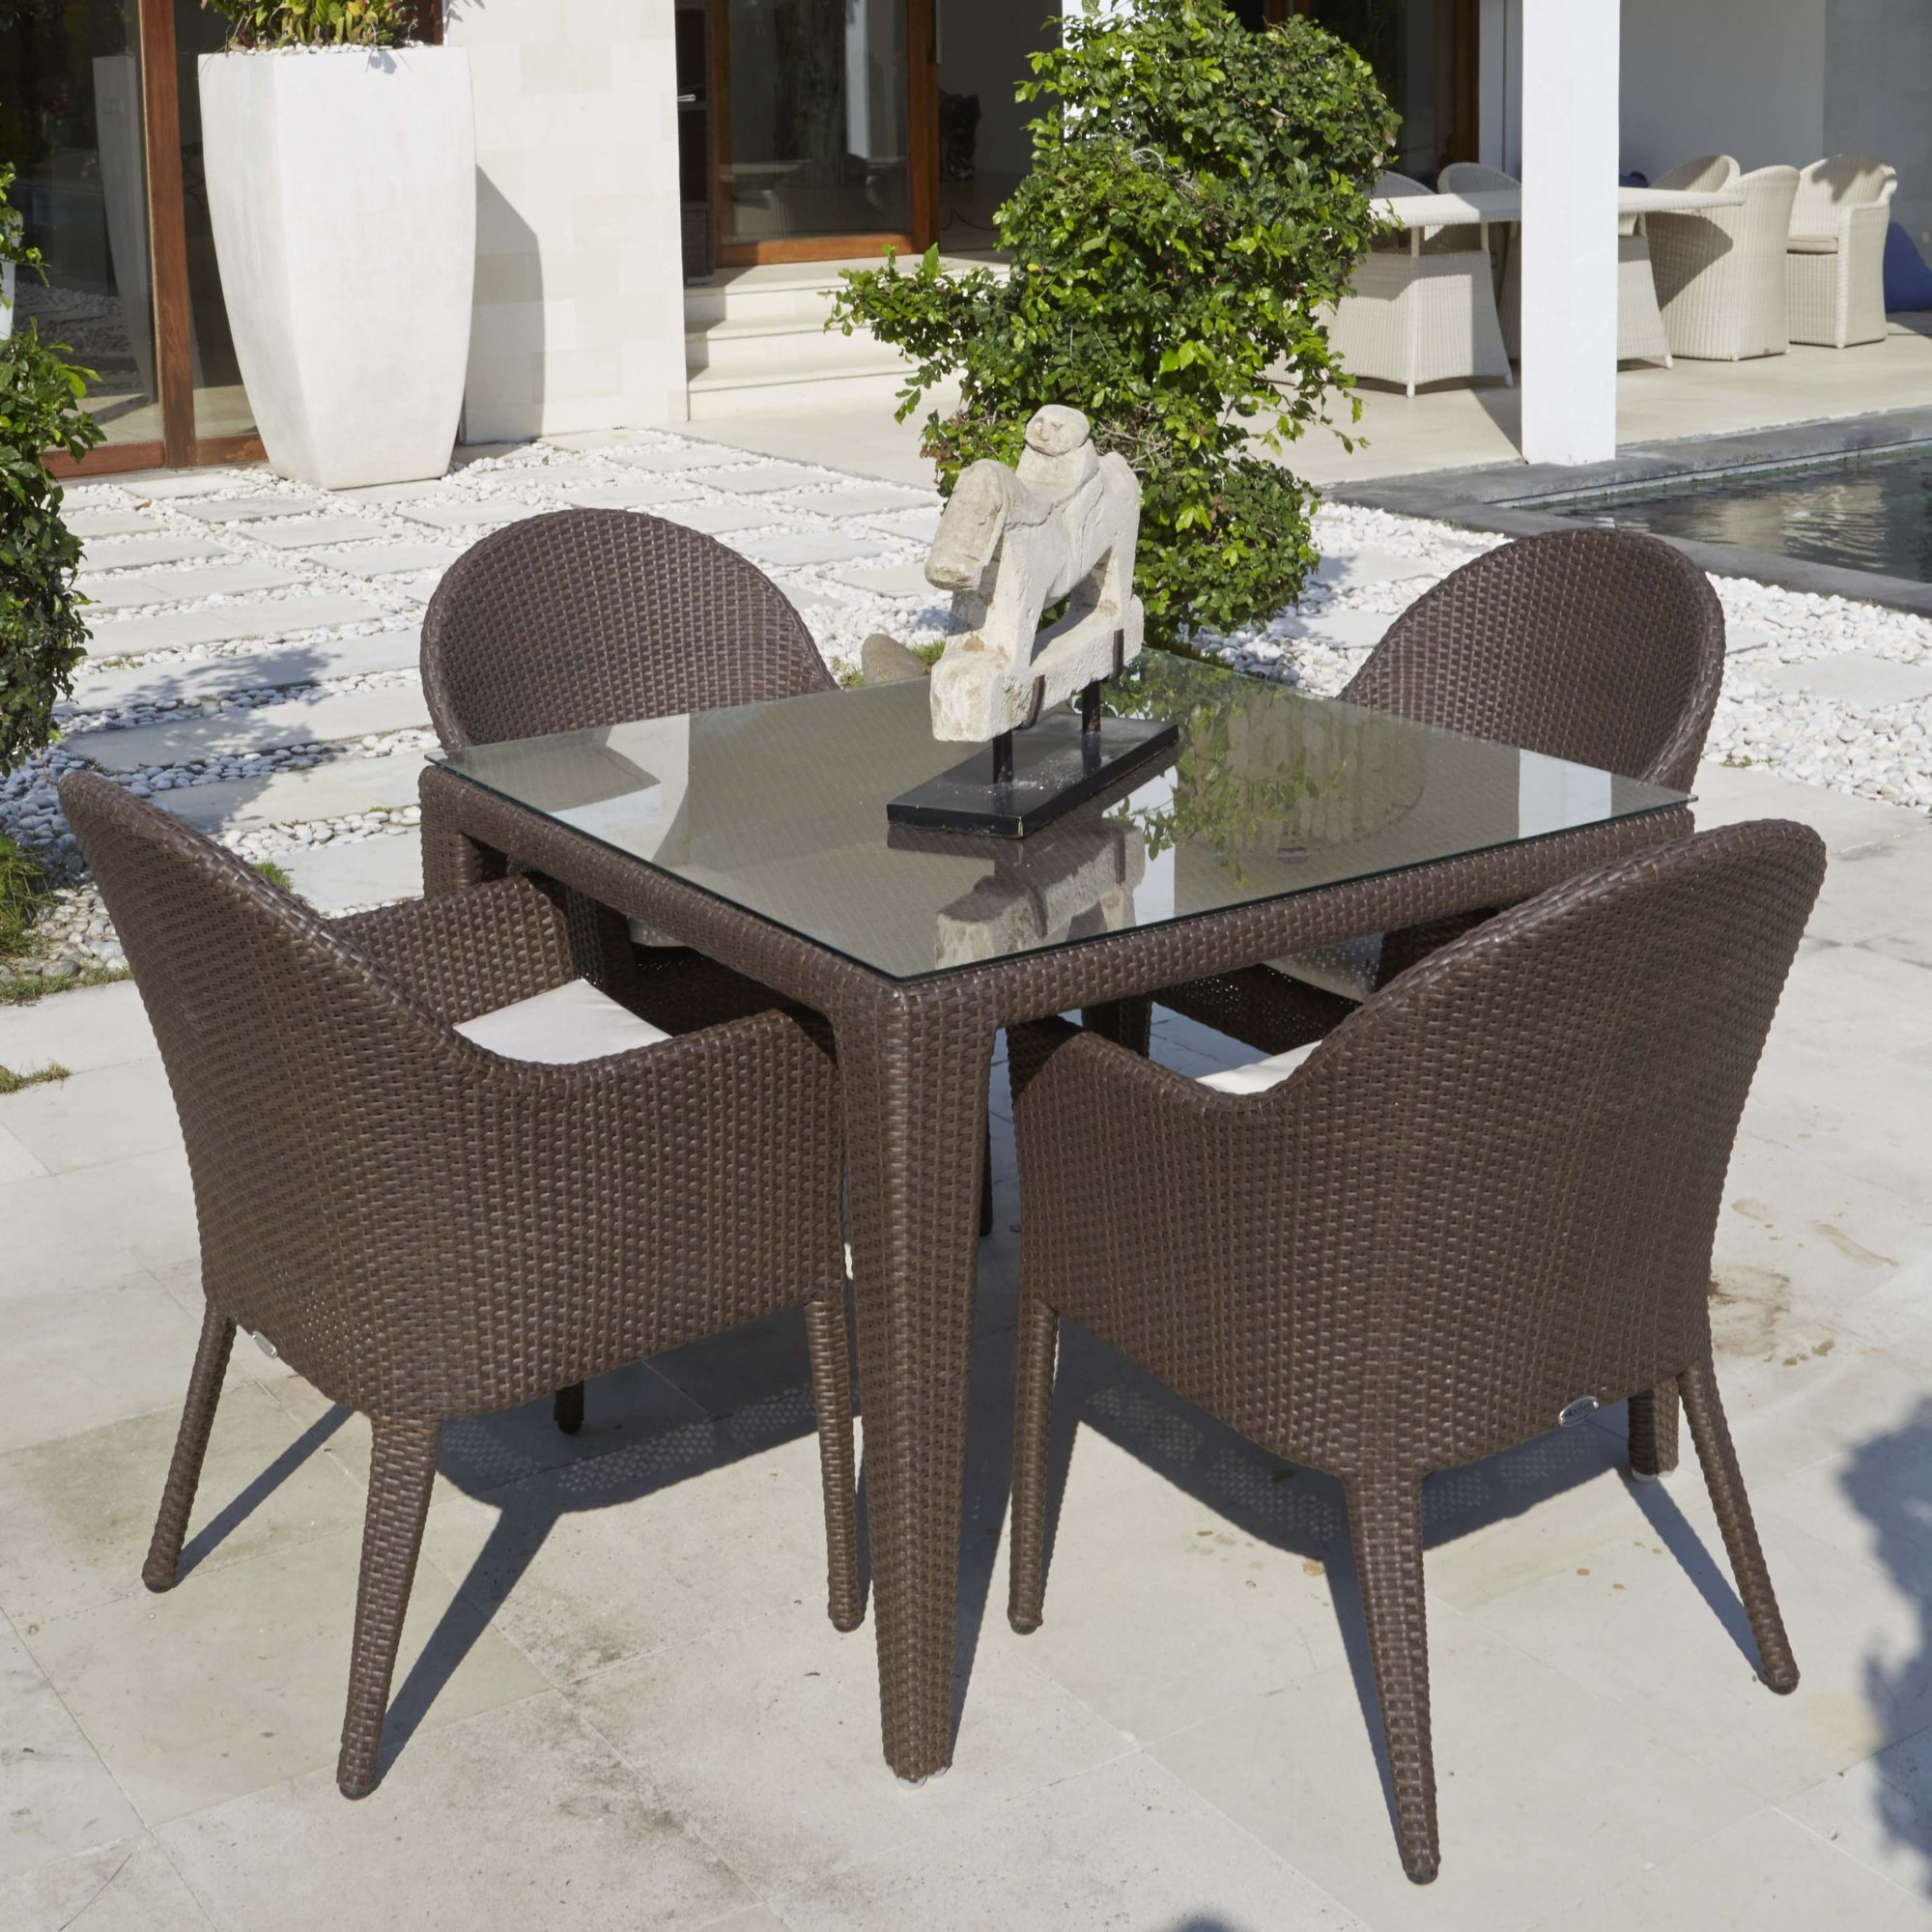 Skyline Malta Dining Collection Couture Outdoor